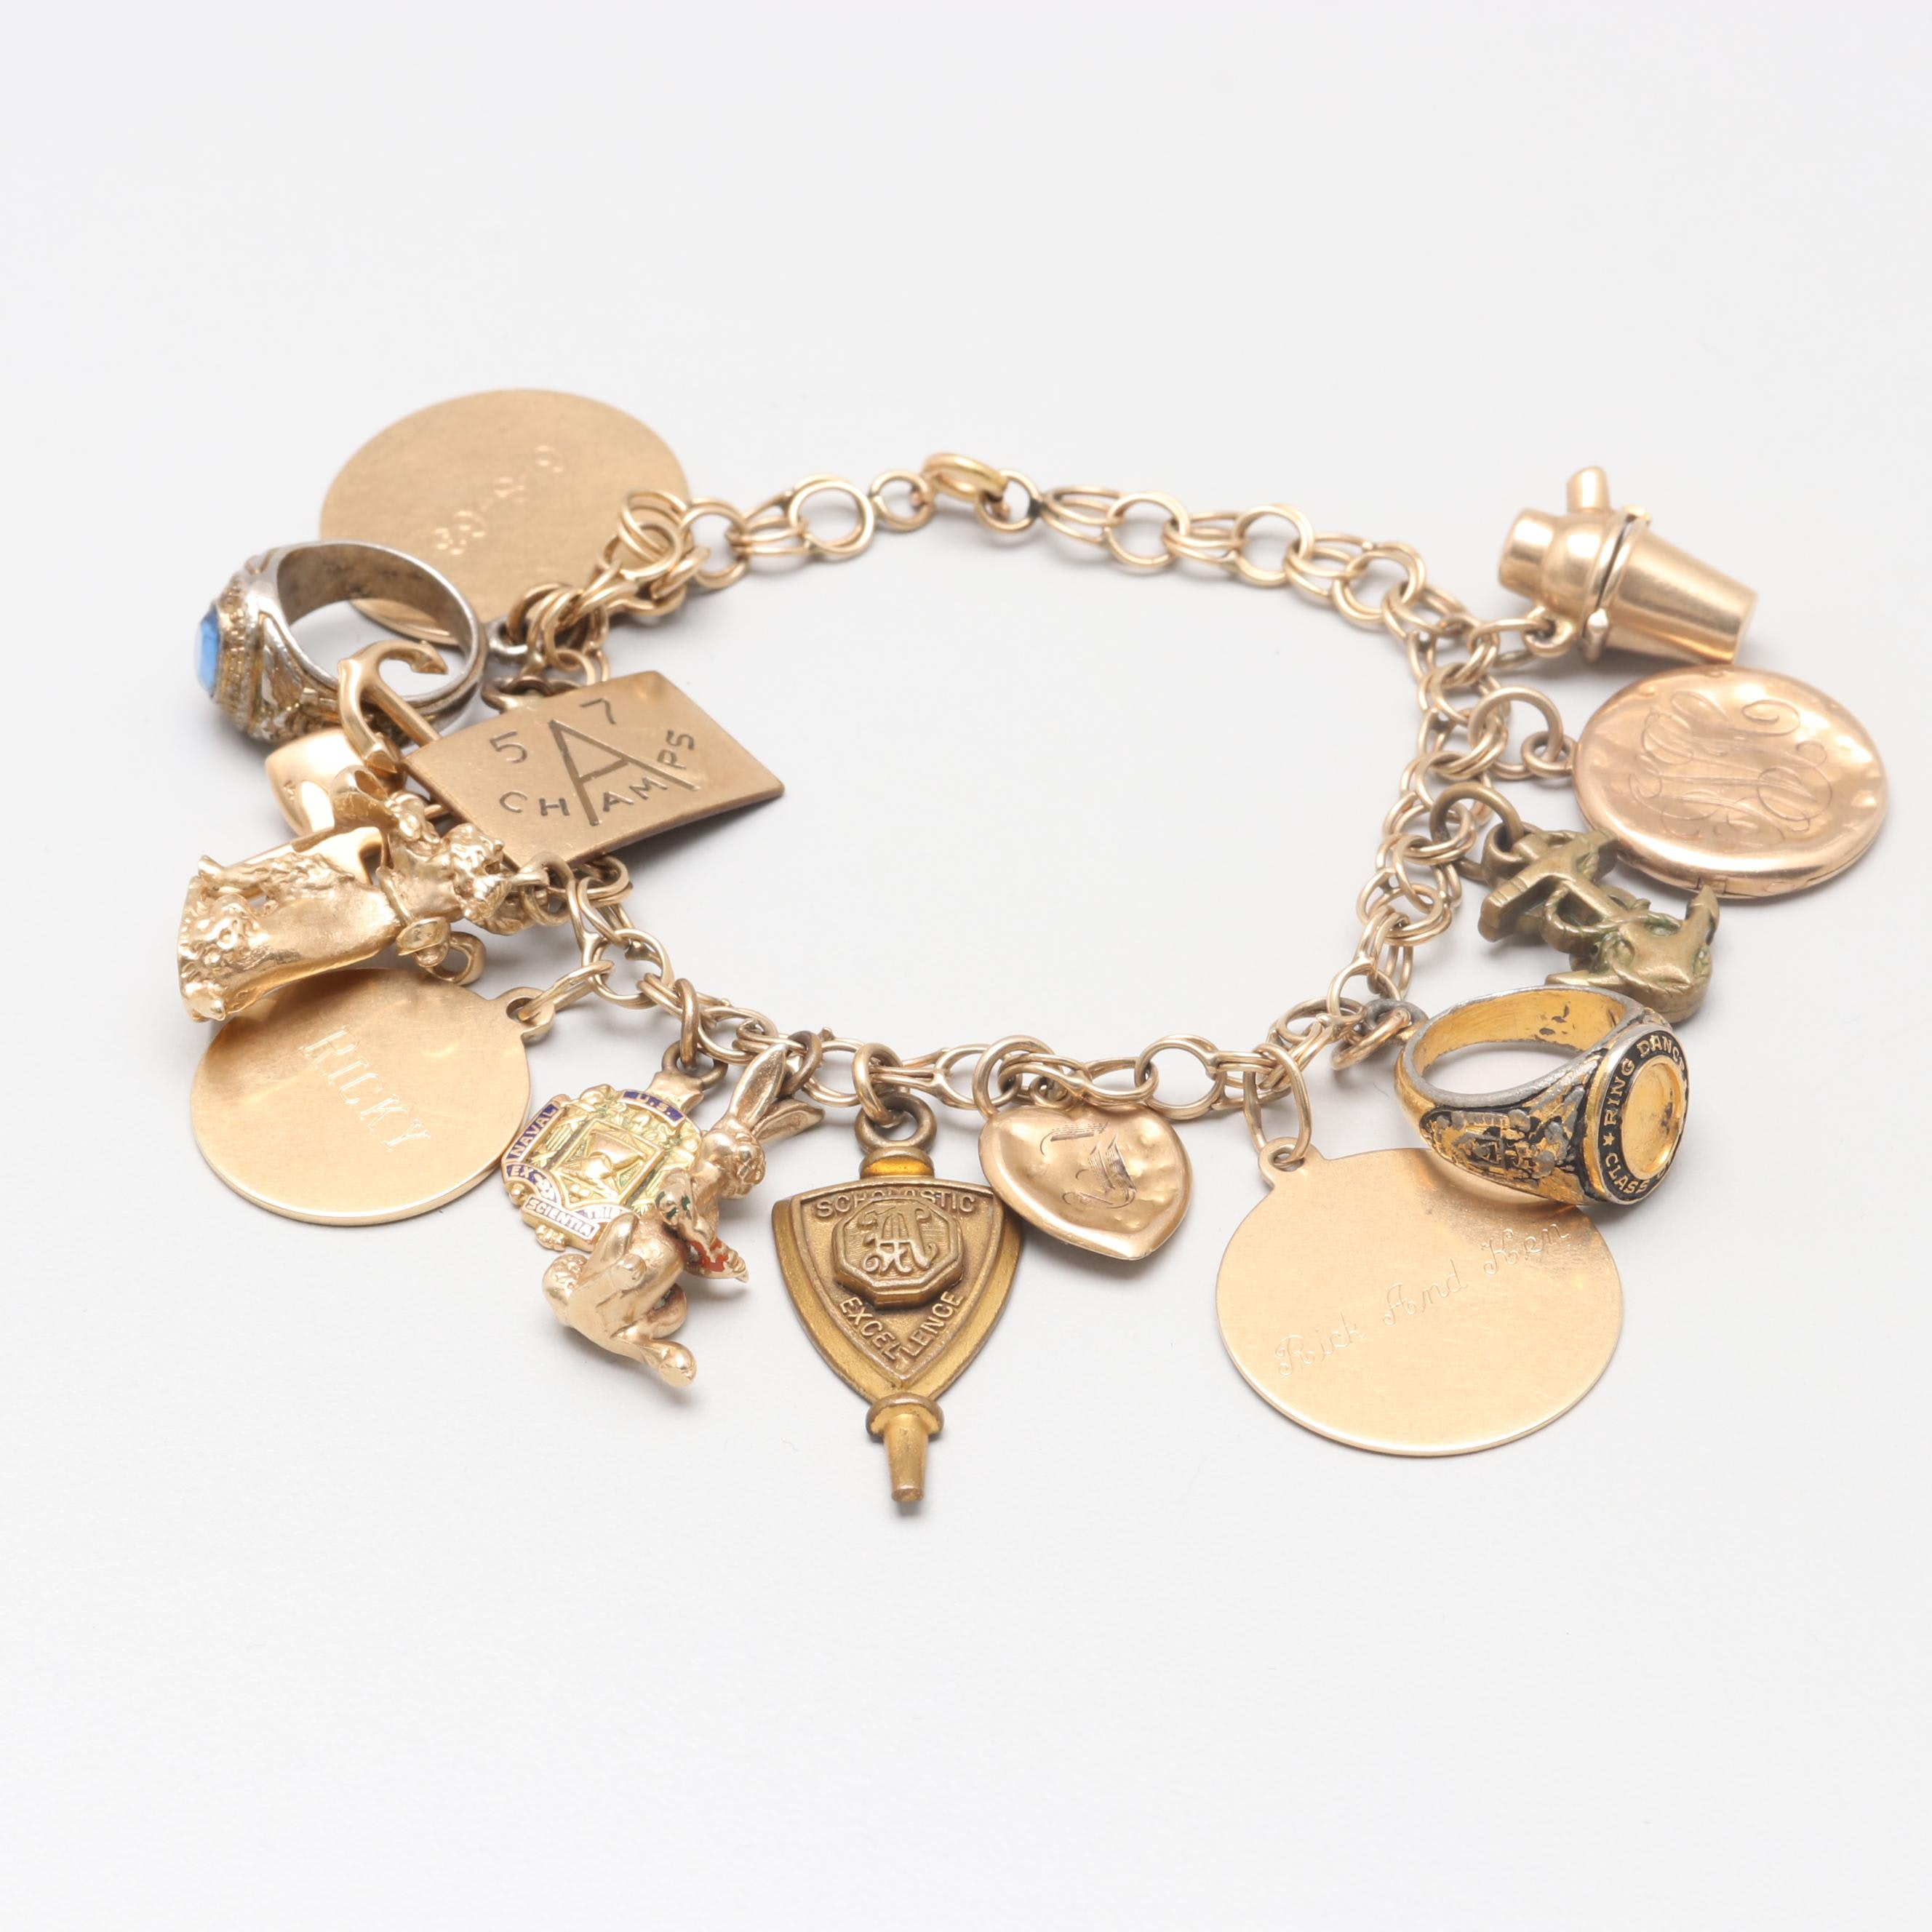 14K Yellow Gold Charm Bracelet with 14K, 10K Yellow Gold and Gold Tone Charms